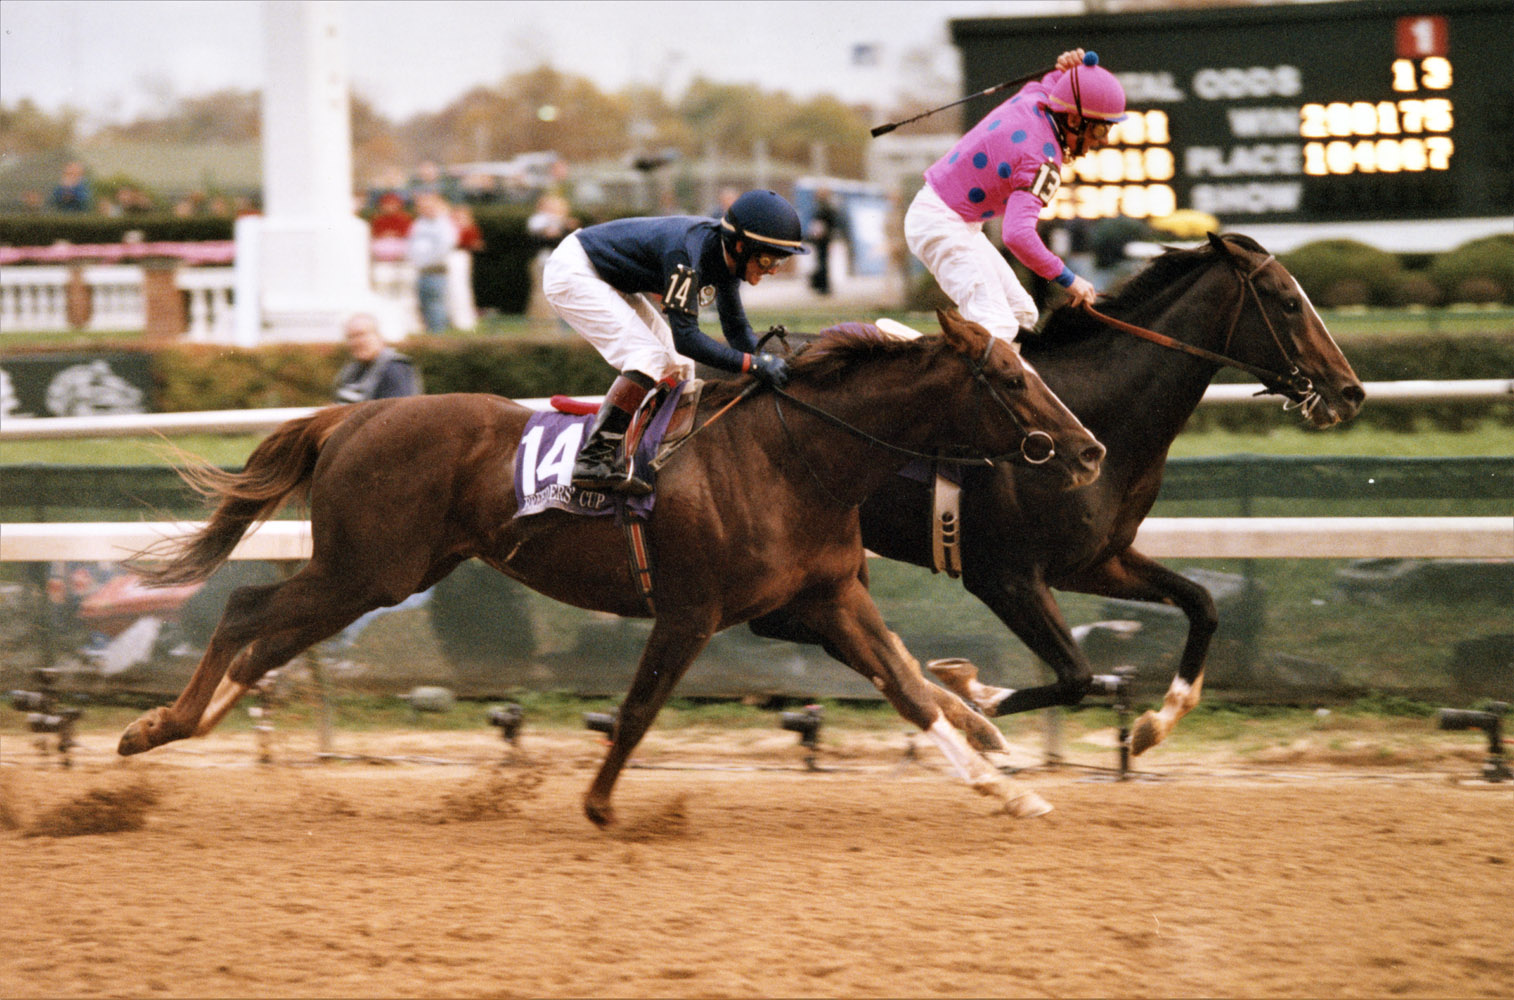 Tiznow (Chris McCarron up) winning the 2000 Breeders' Cup Classic at Churchill Downs by a neck over Giant's Causeway (Keeneland Library Thoroughbred Times Collection)